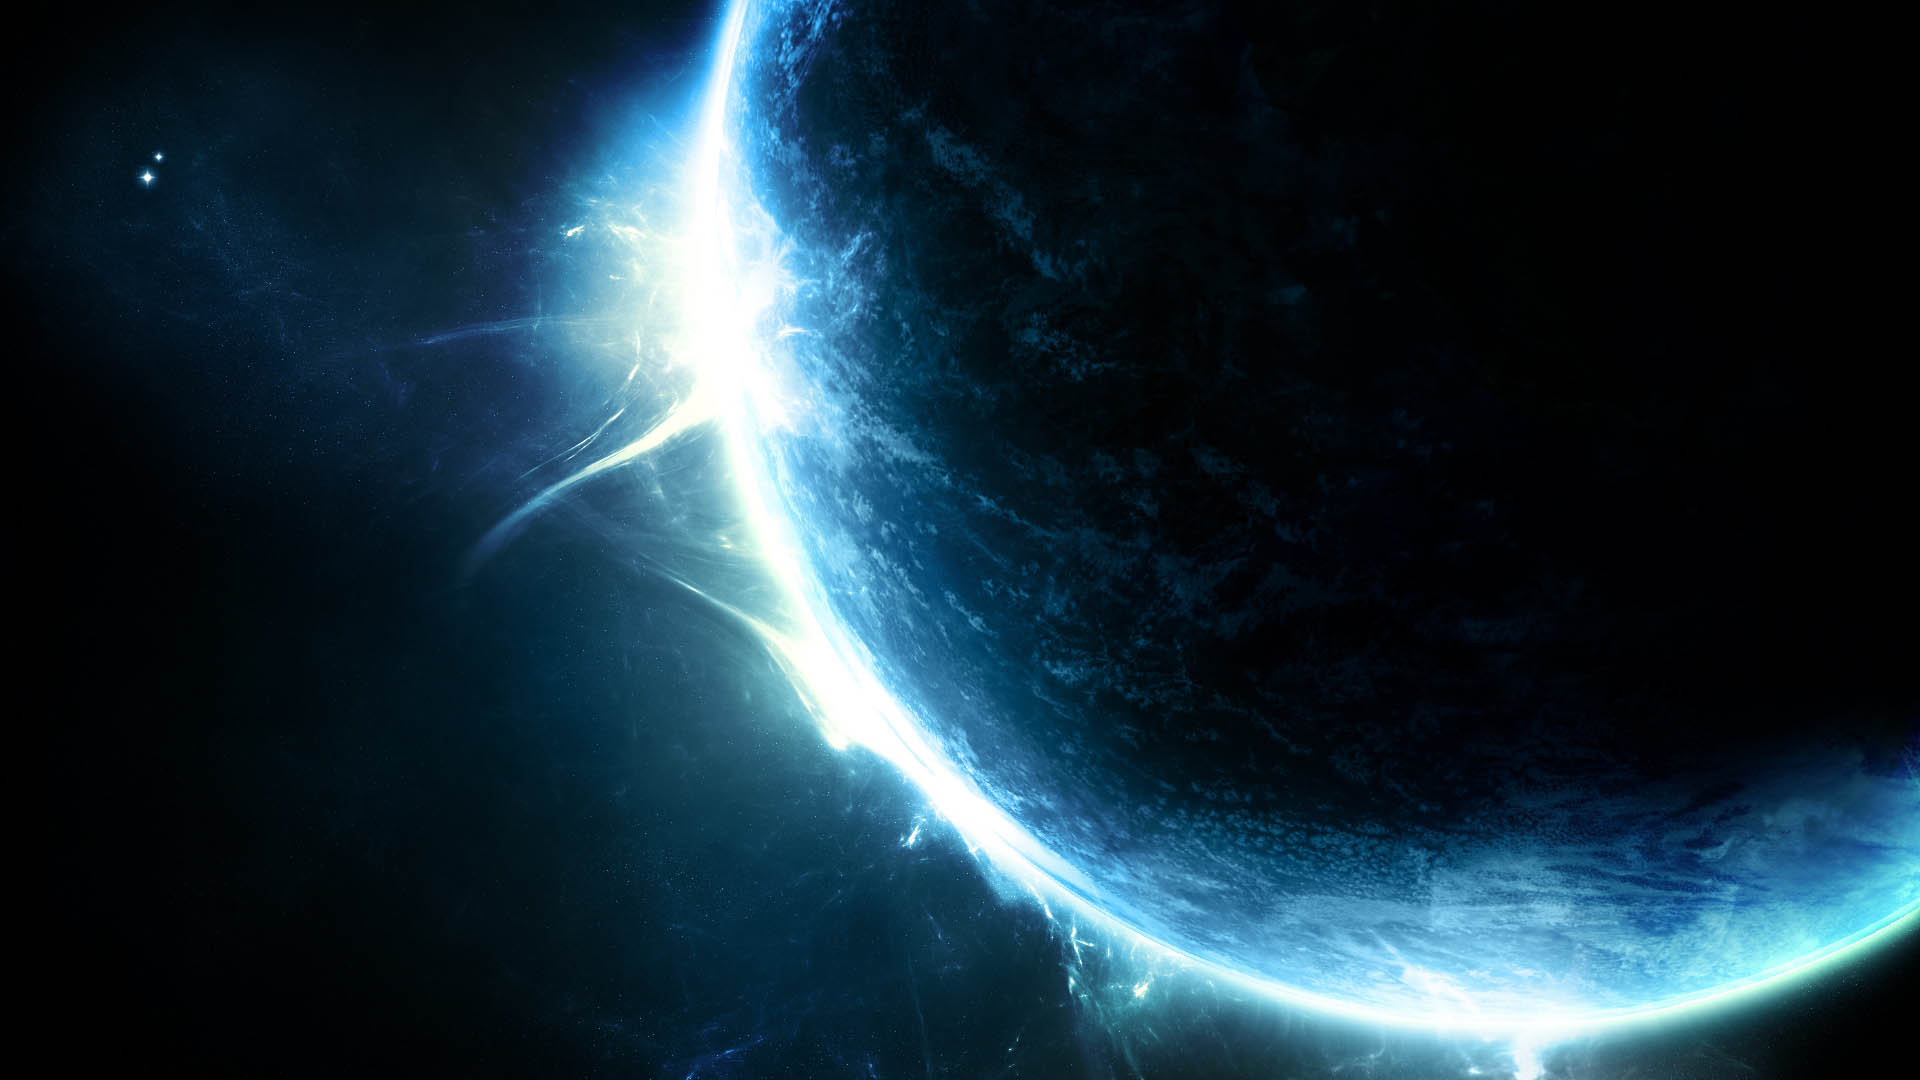 space wallpaper 4 1920x1080